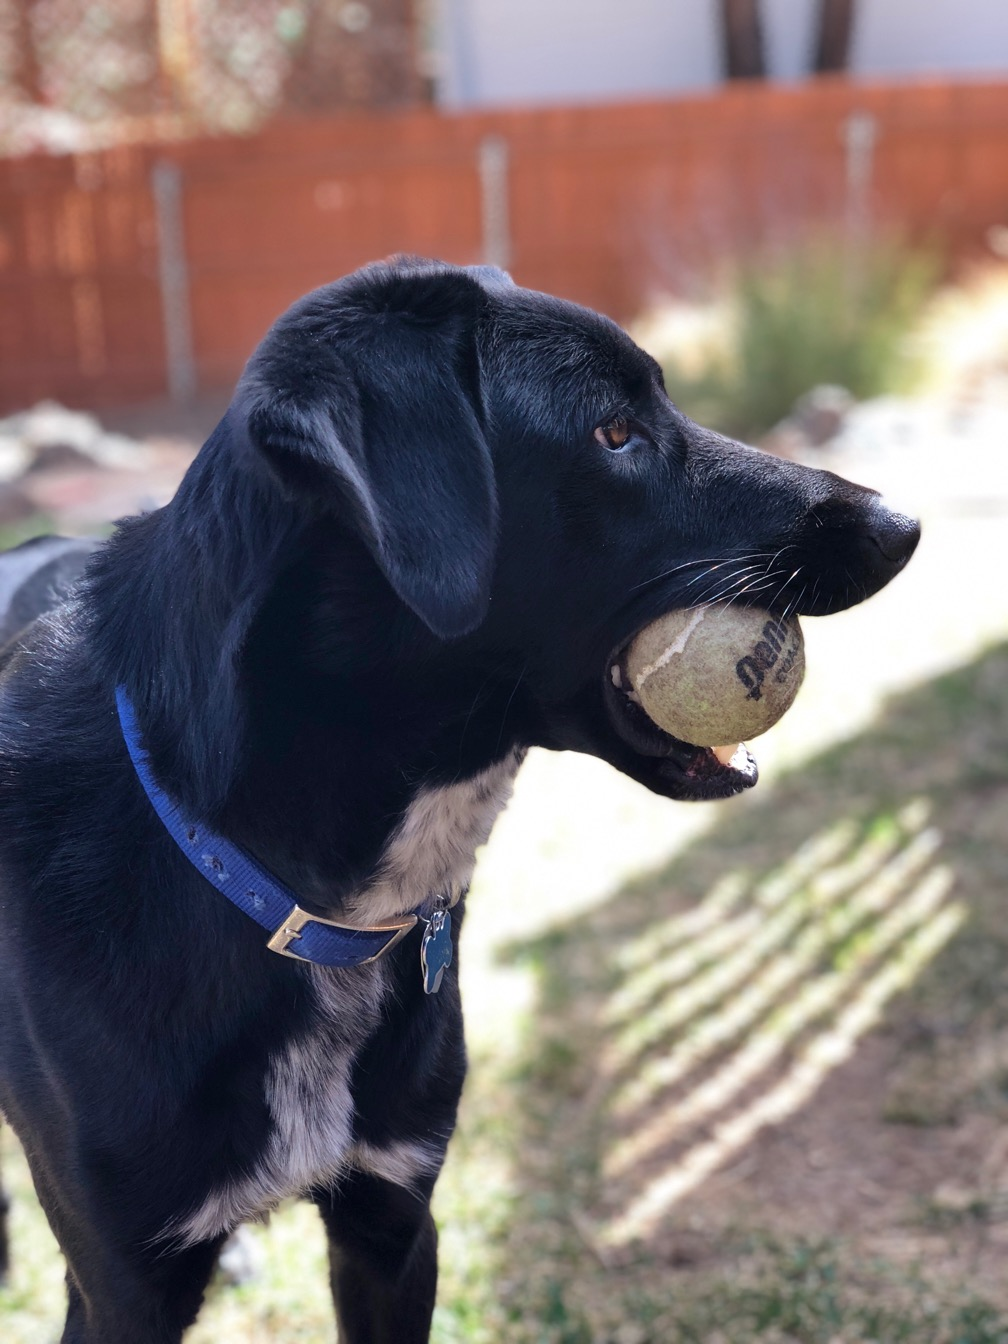 Black and white puppy with tennis ball, in profile.